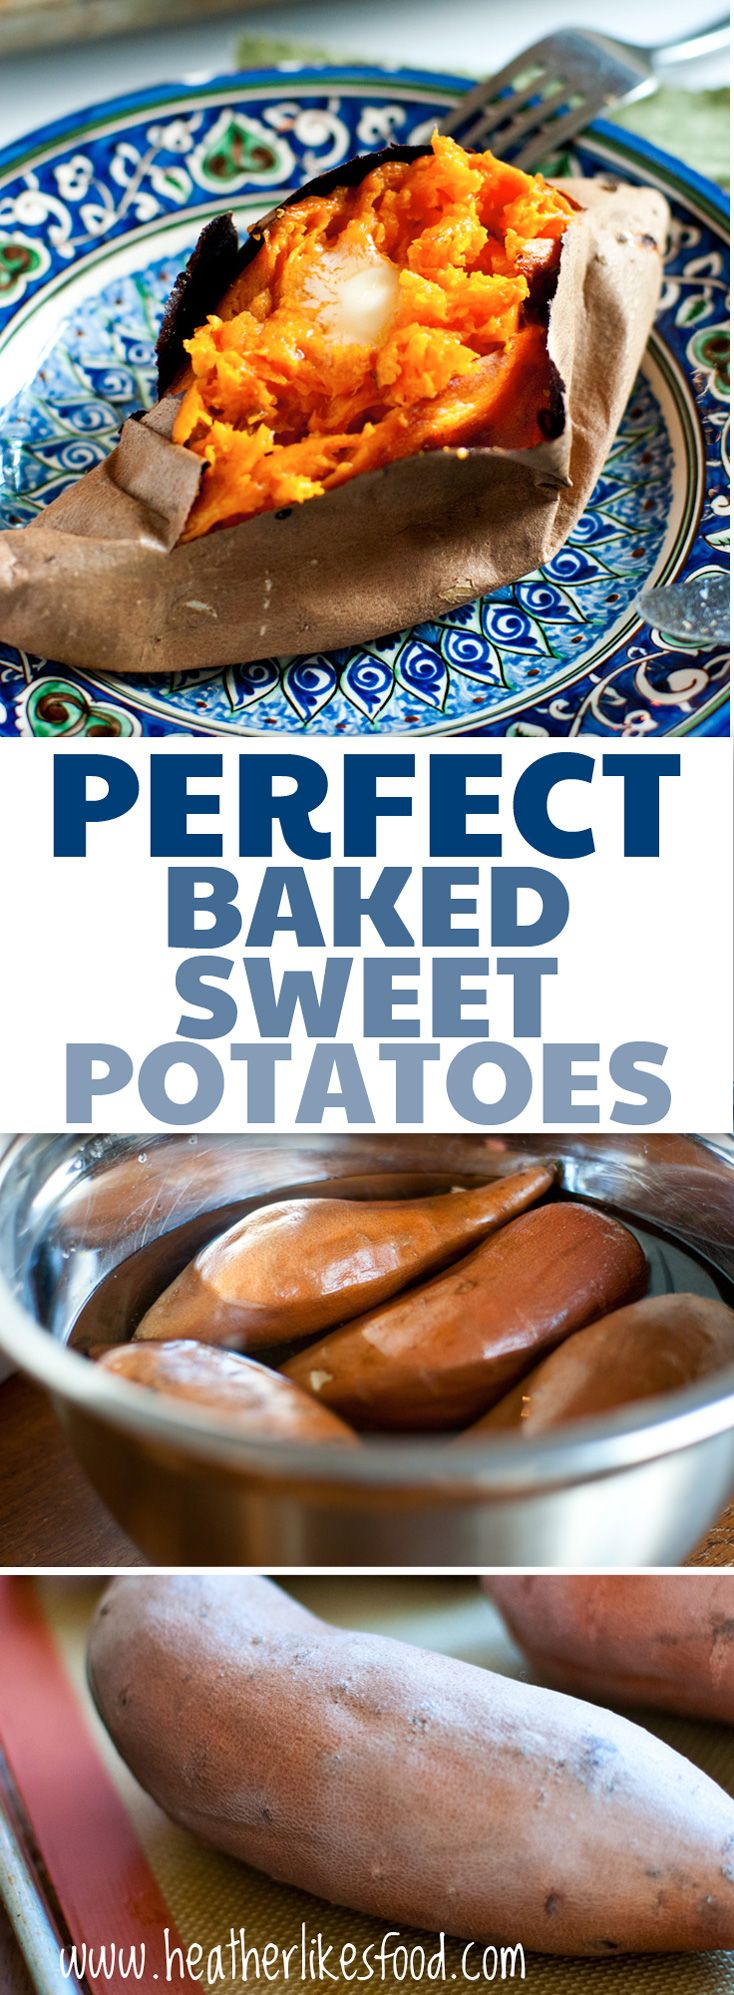 "Creamy and tender, these perfectly baked sweet potatoes are everything you want your potato to be. It's all the in the ""secret step""!"